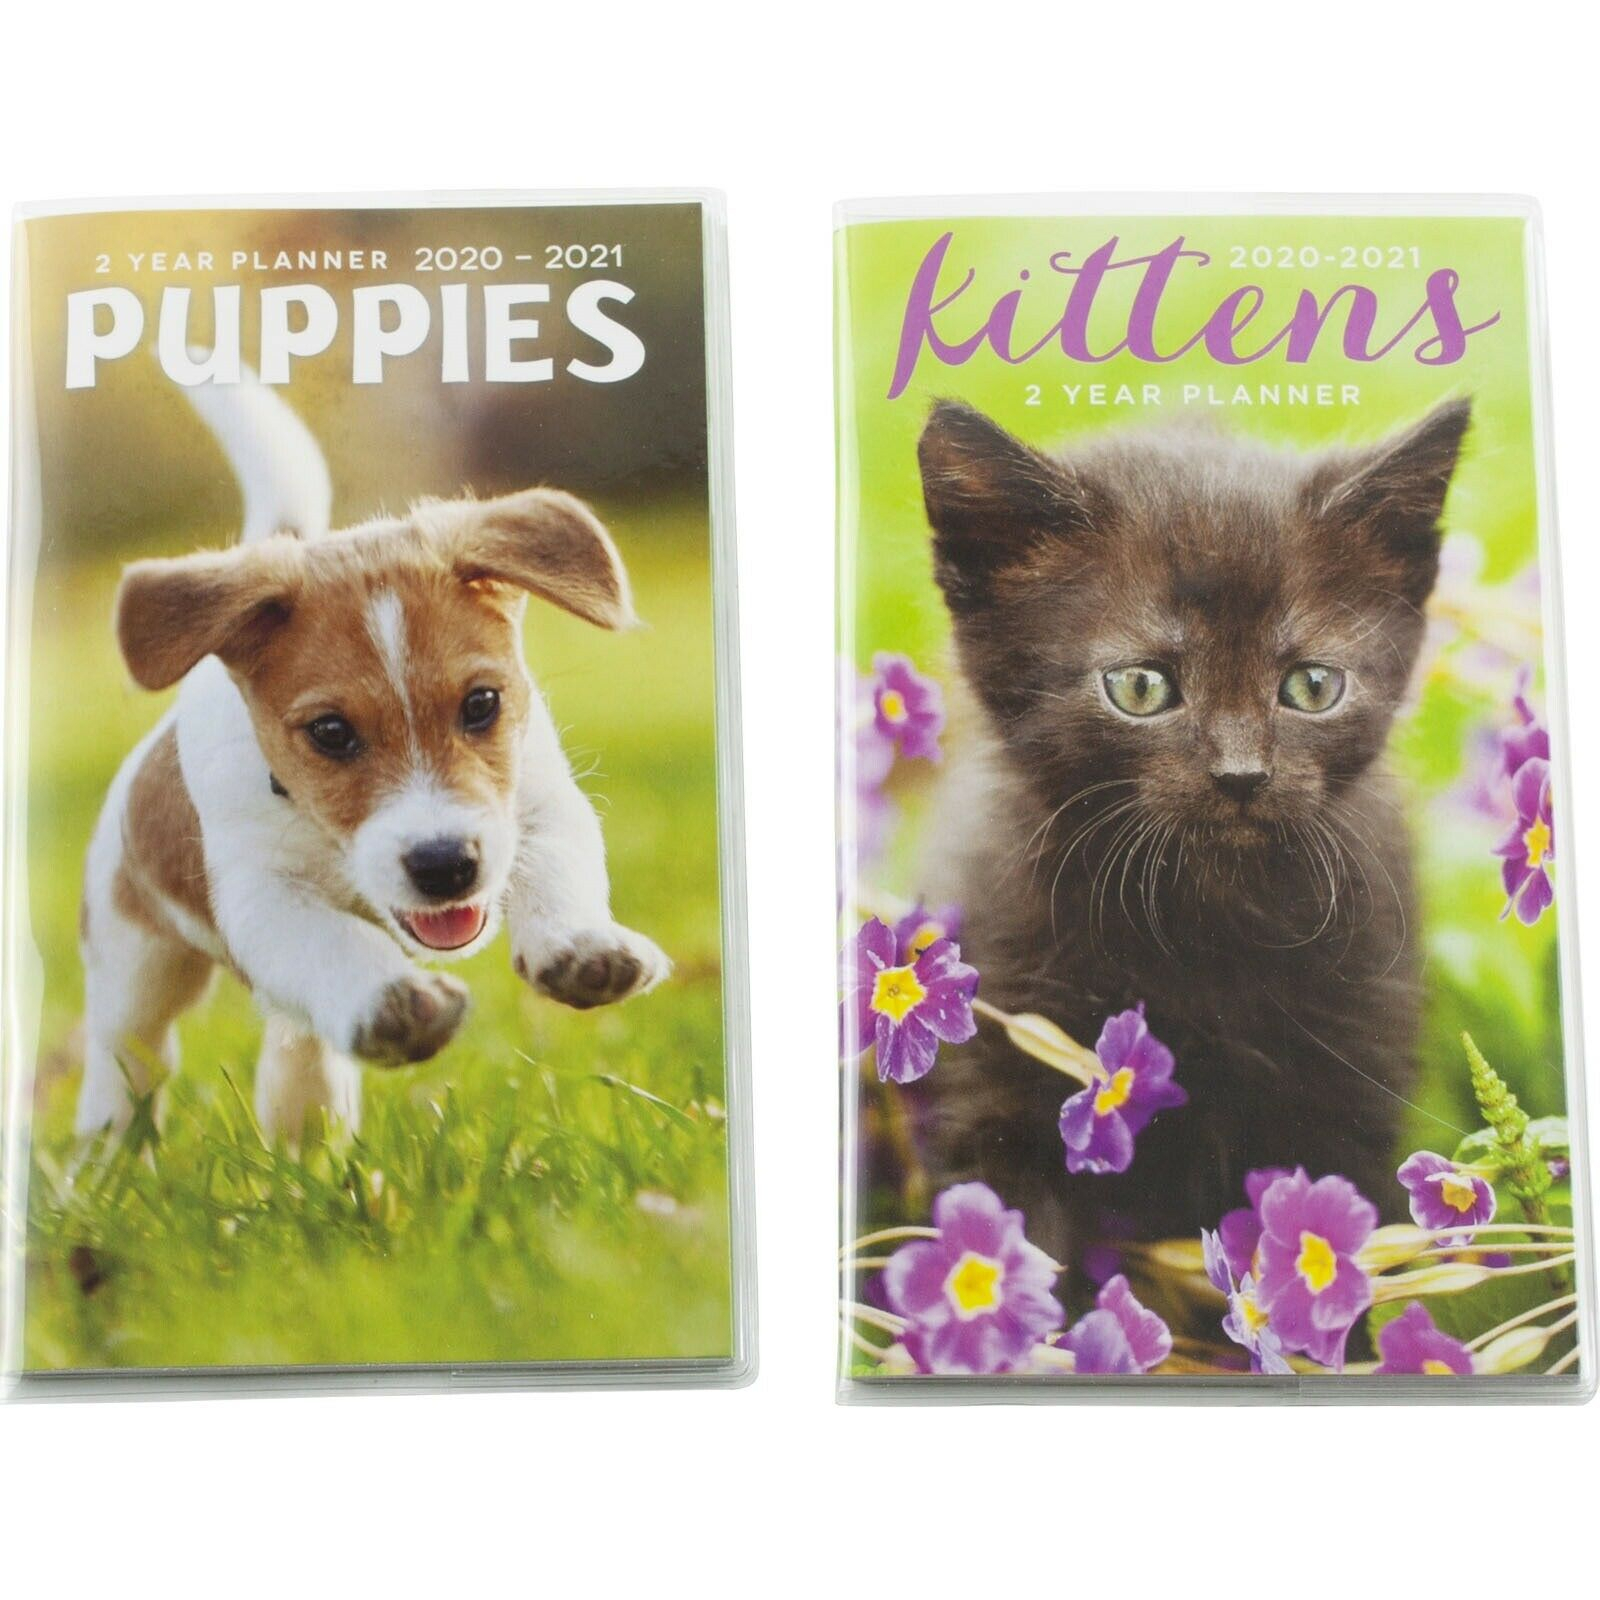 Details About Kittens Cats Puppies Dogs 2020 2021 Twoyear Monthly Pocket  Mini Planner 3.75X6.5